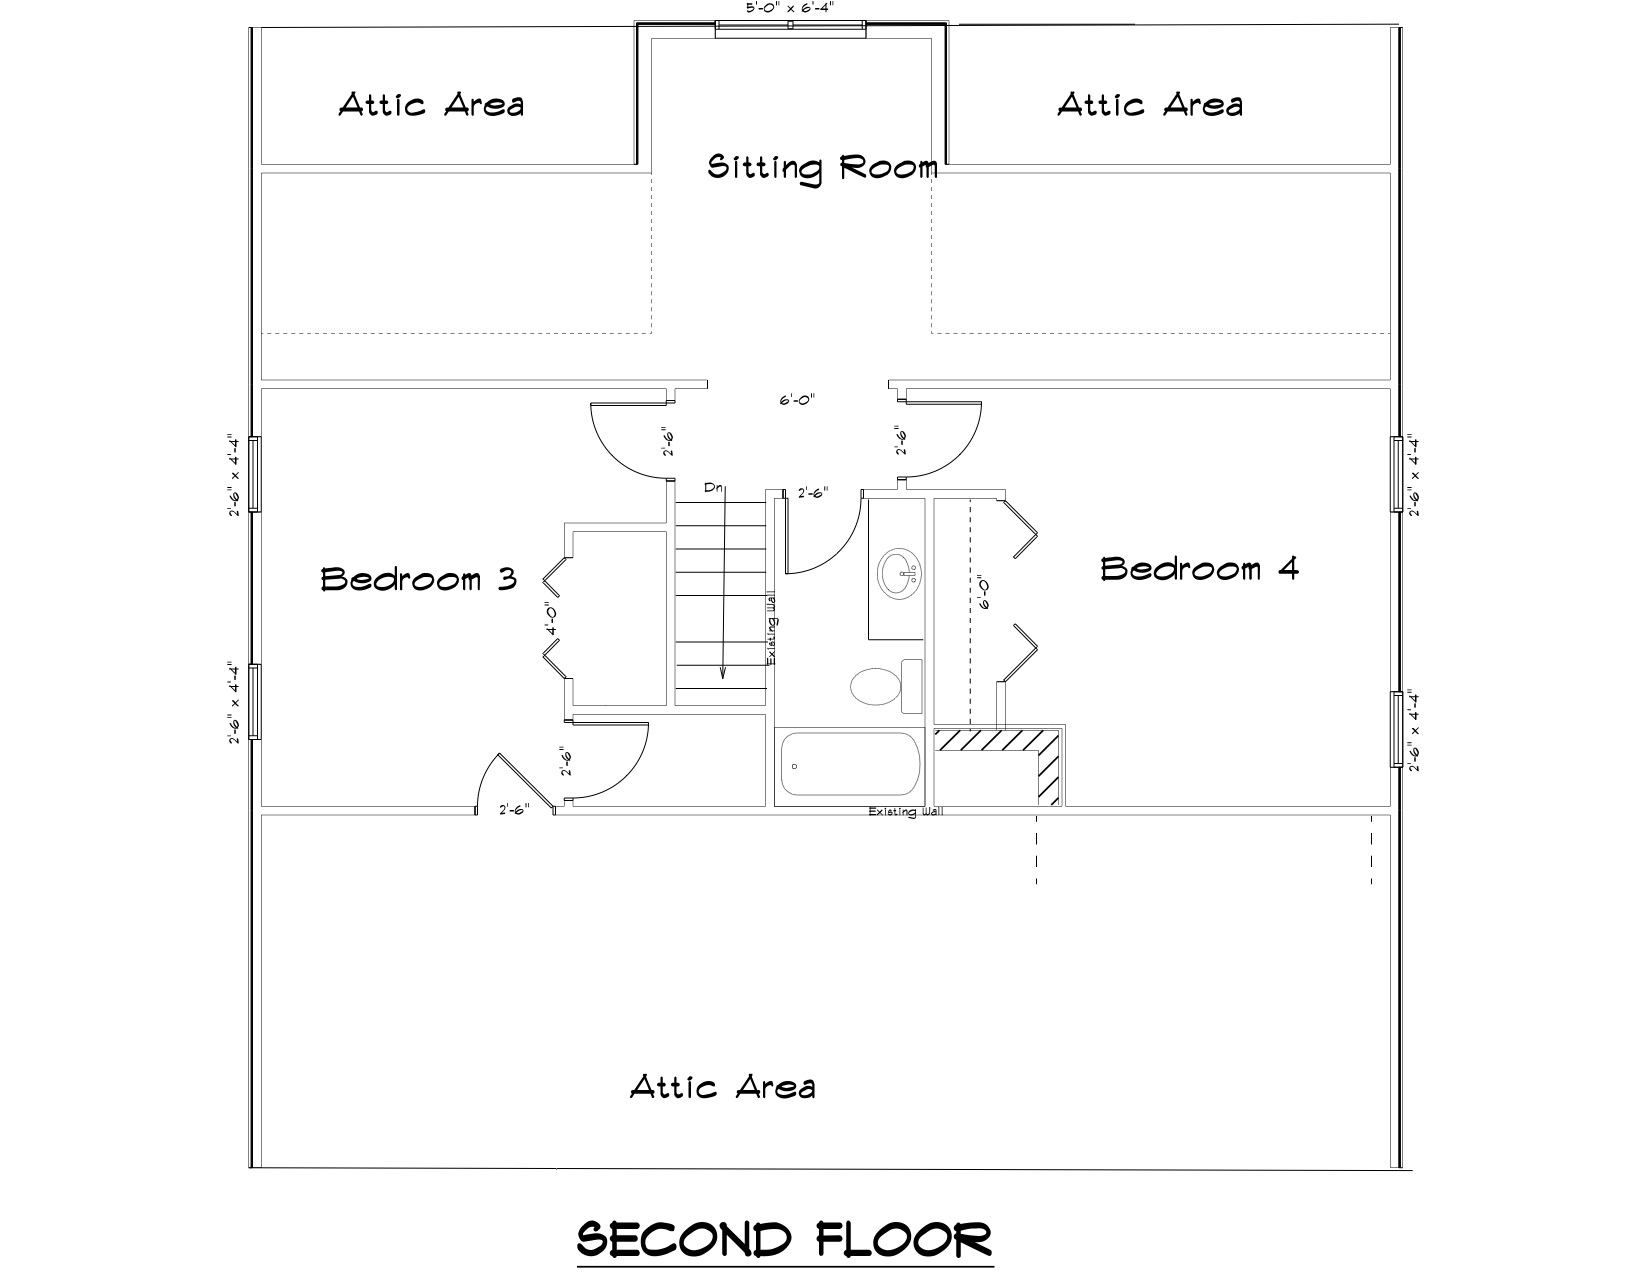 Lake House second floor plan